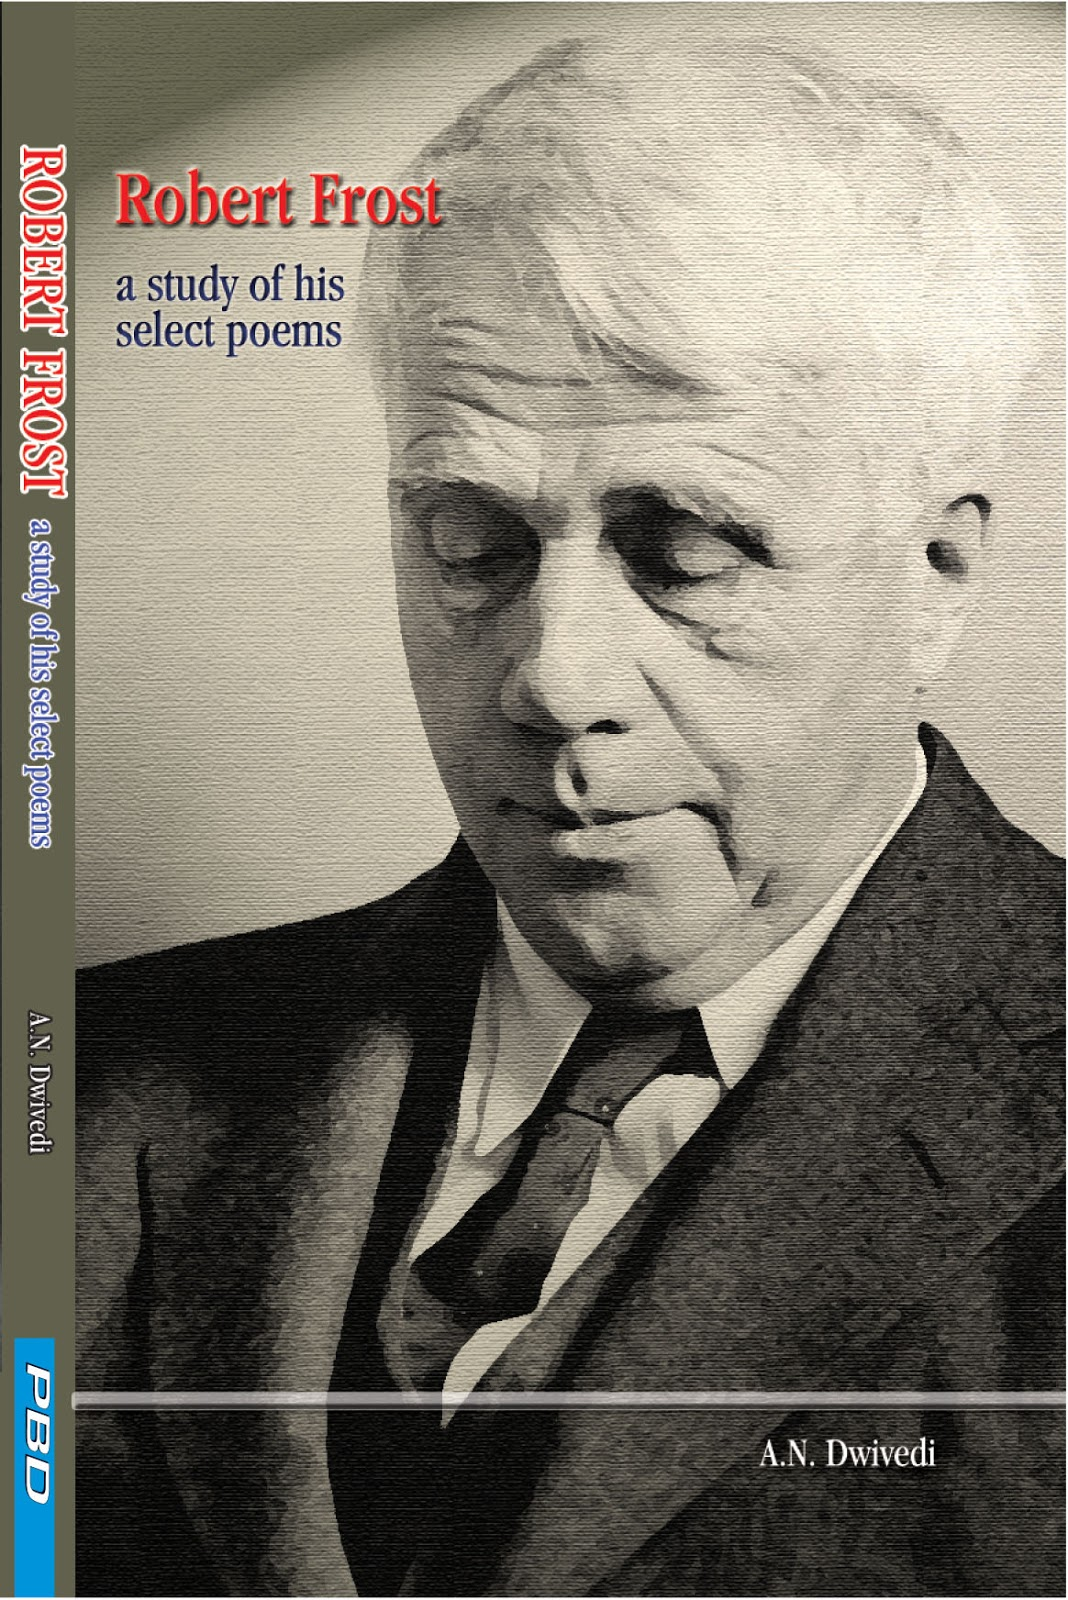 a biography of american poet robert frost